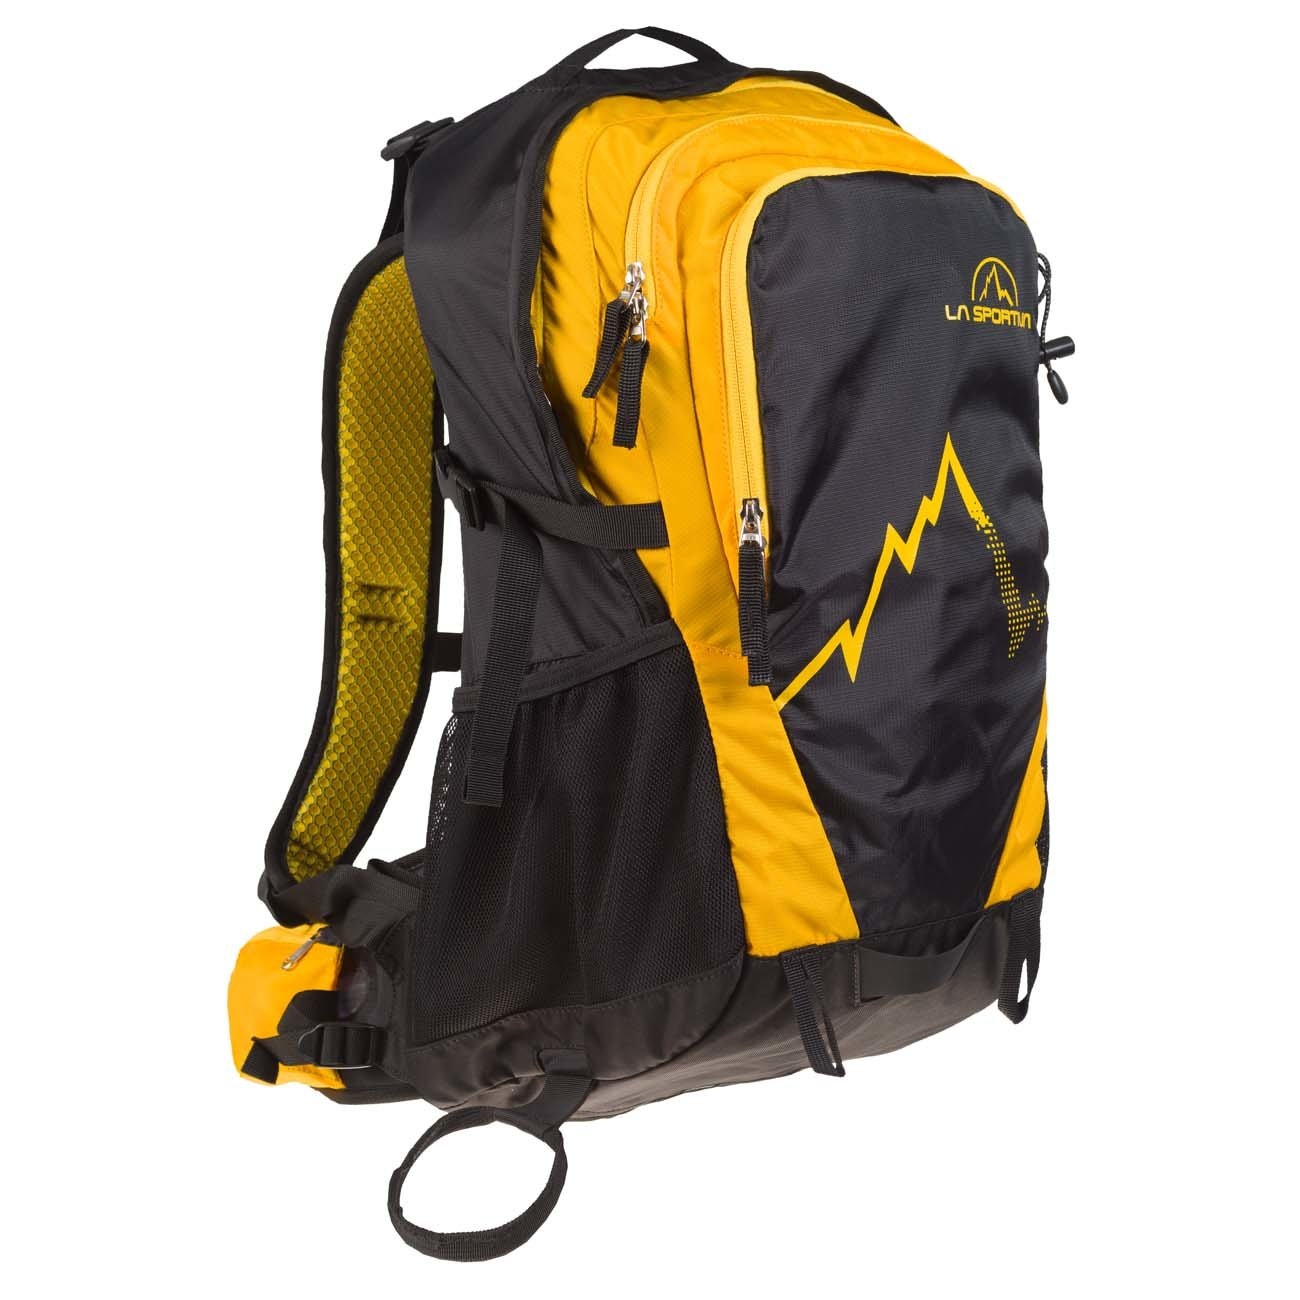 La Sportiva Backpack A.T. 30